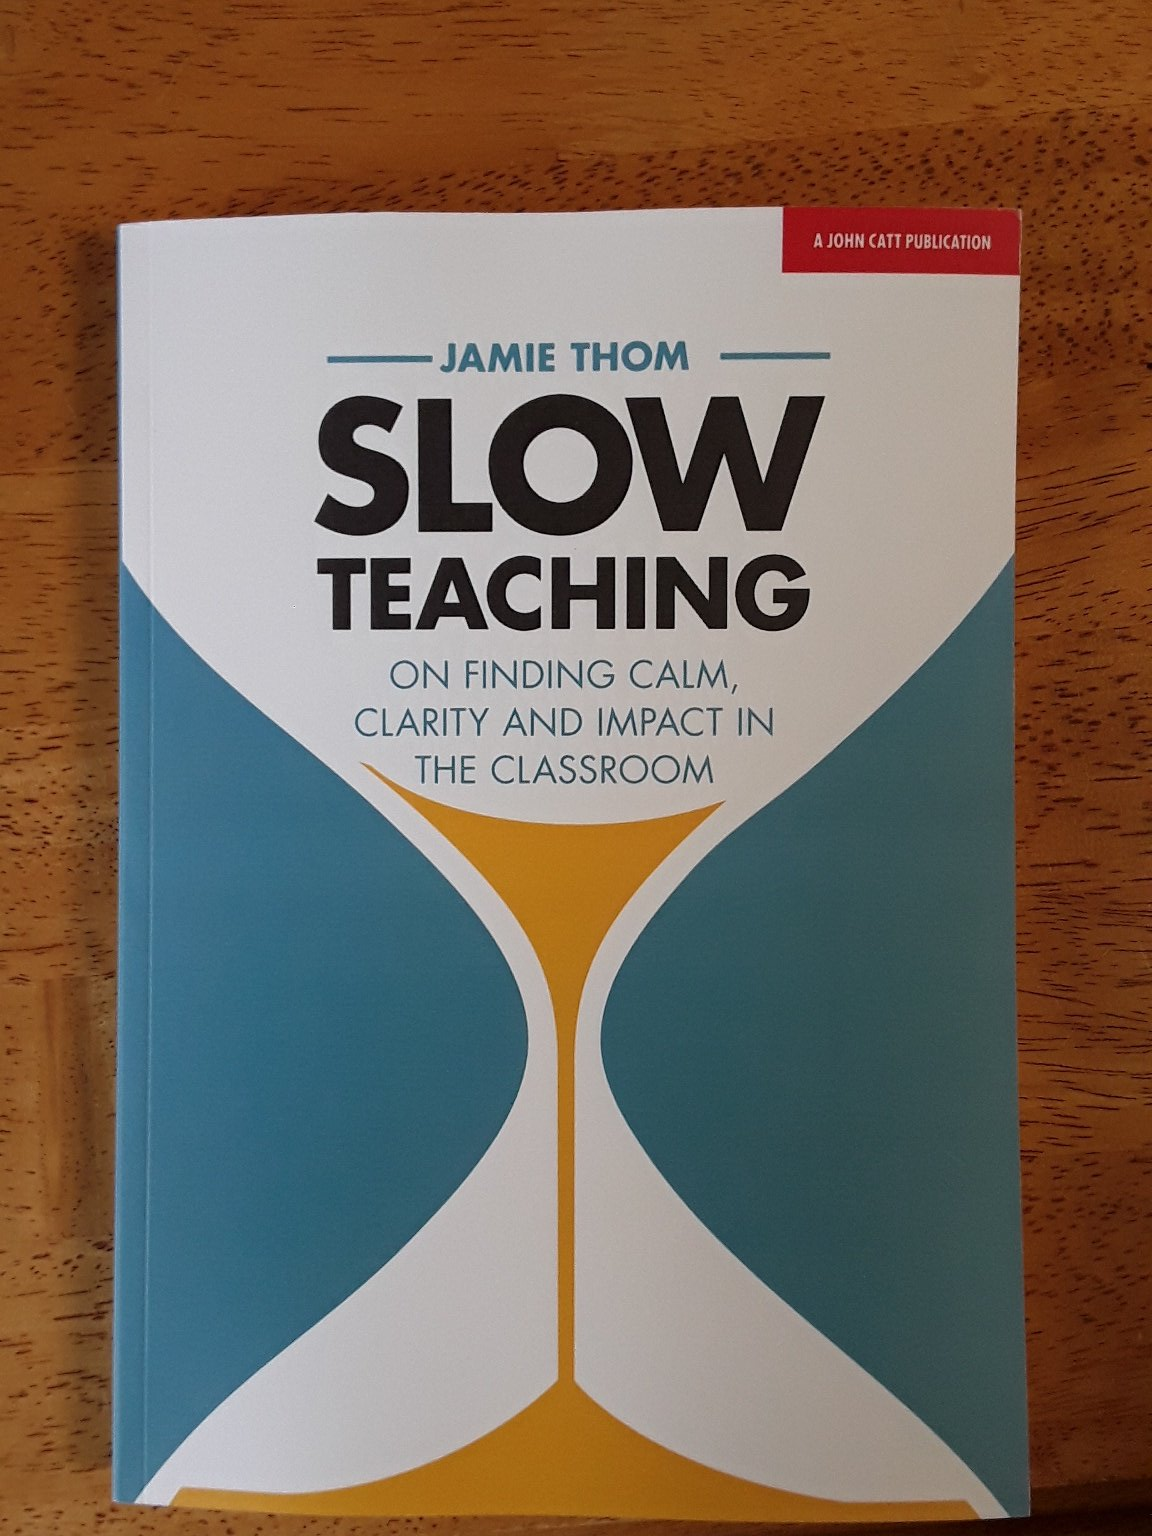 Slow Teaching by Jamie Thom - Schoolwell